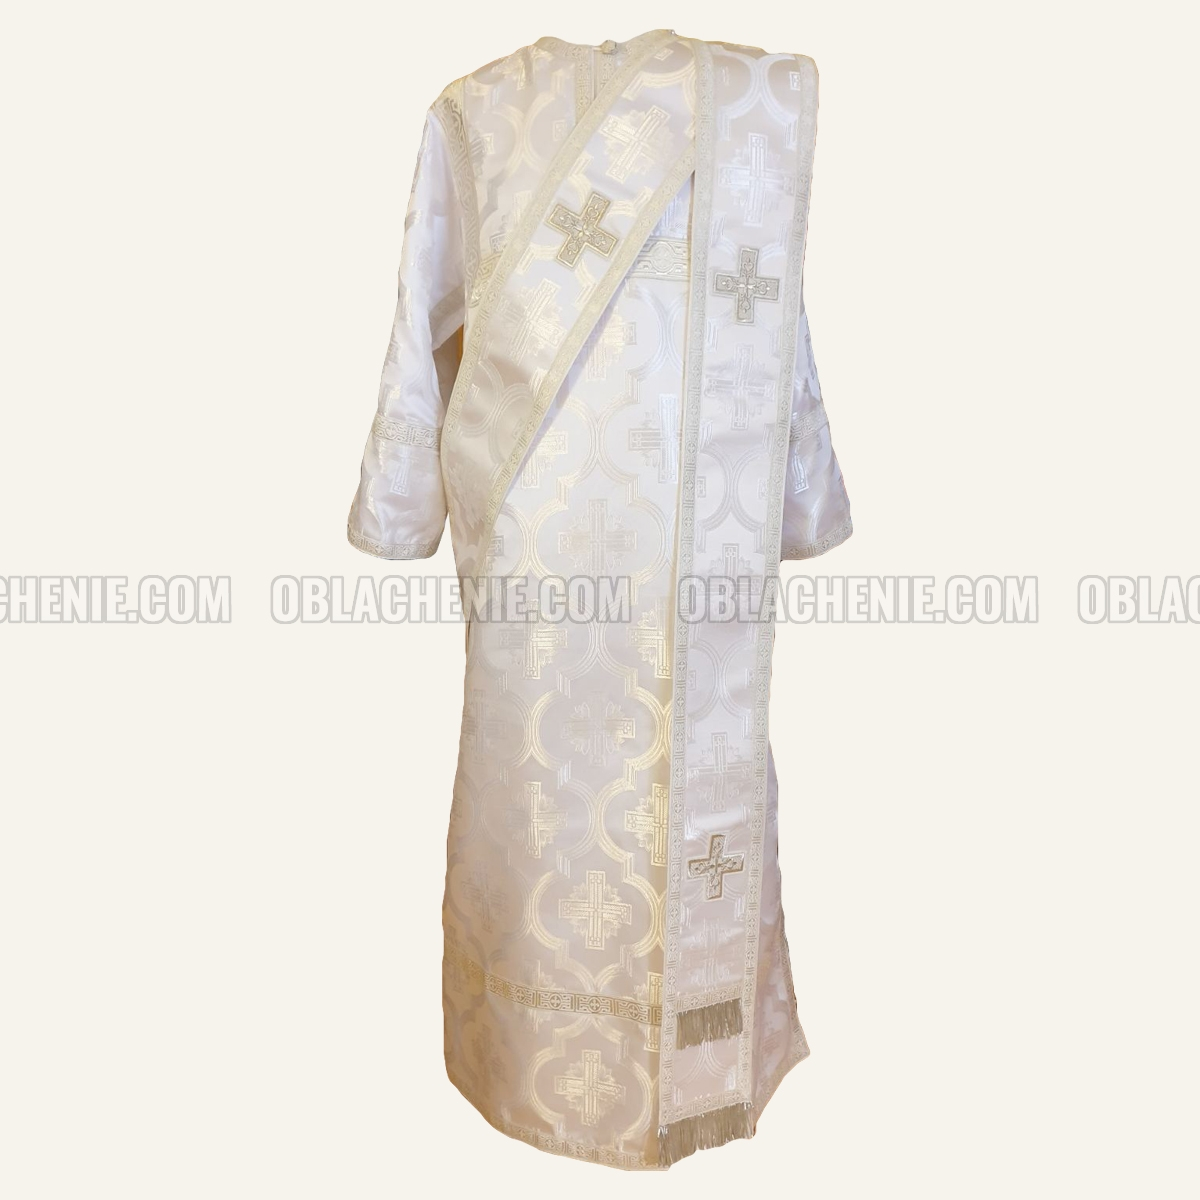 DEACON'S VESTMENTS 10978